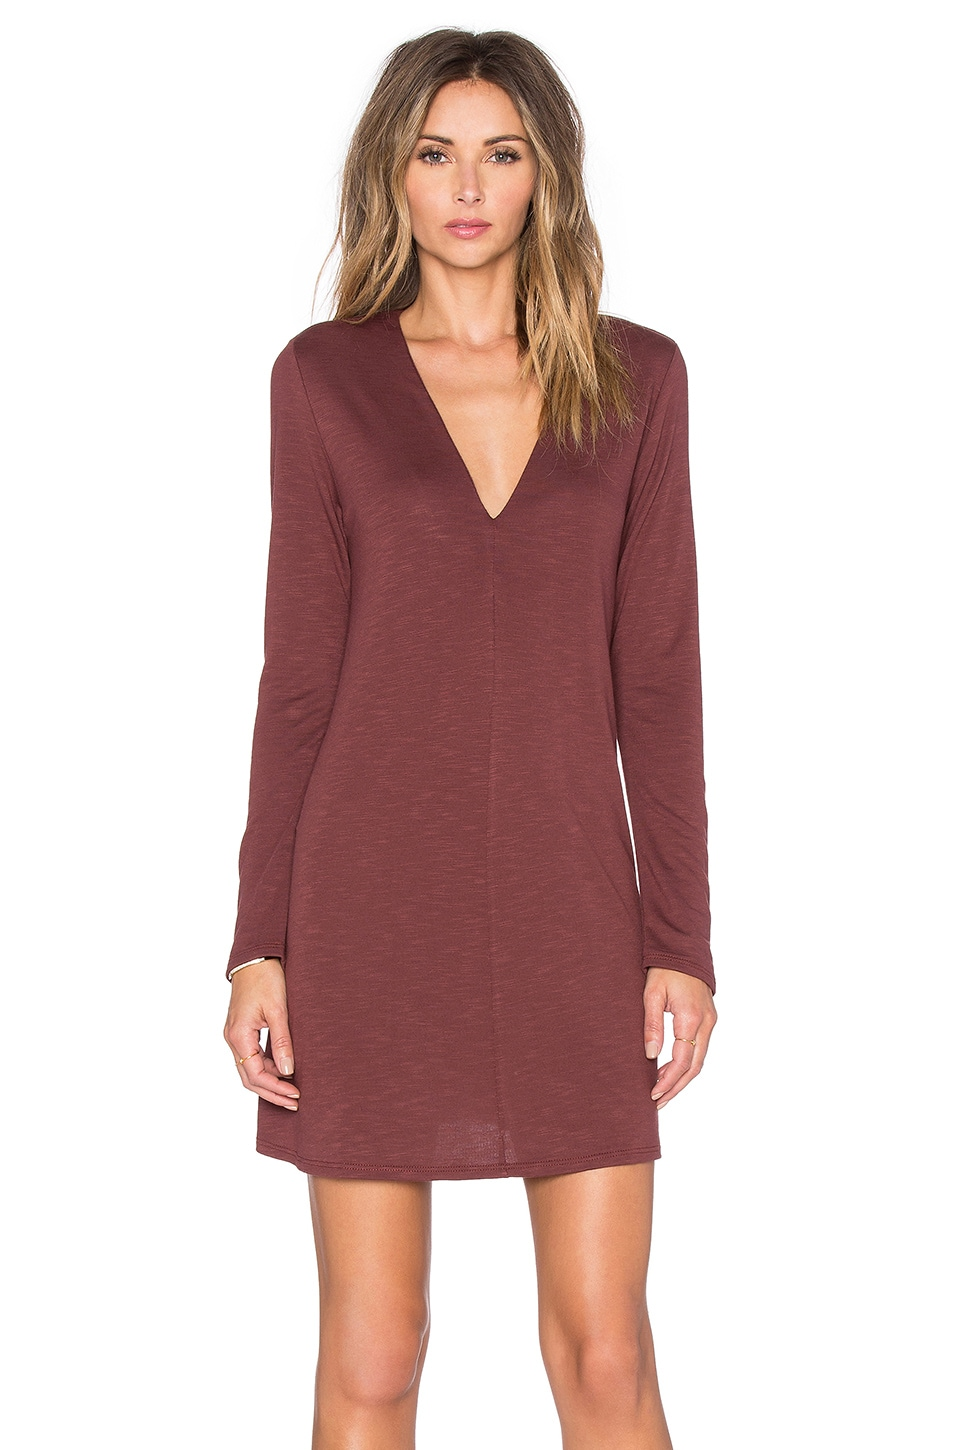 Lanston Long Sleeve Flare Dress in Brick